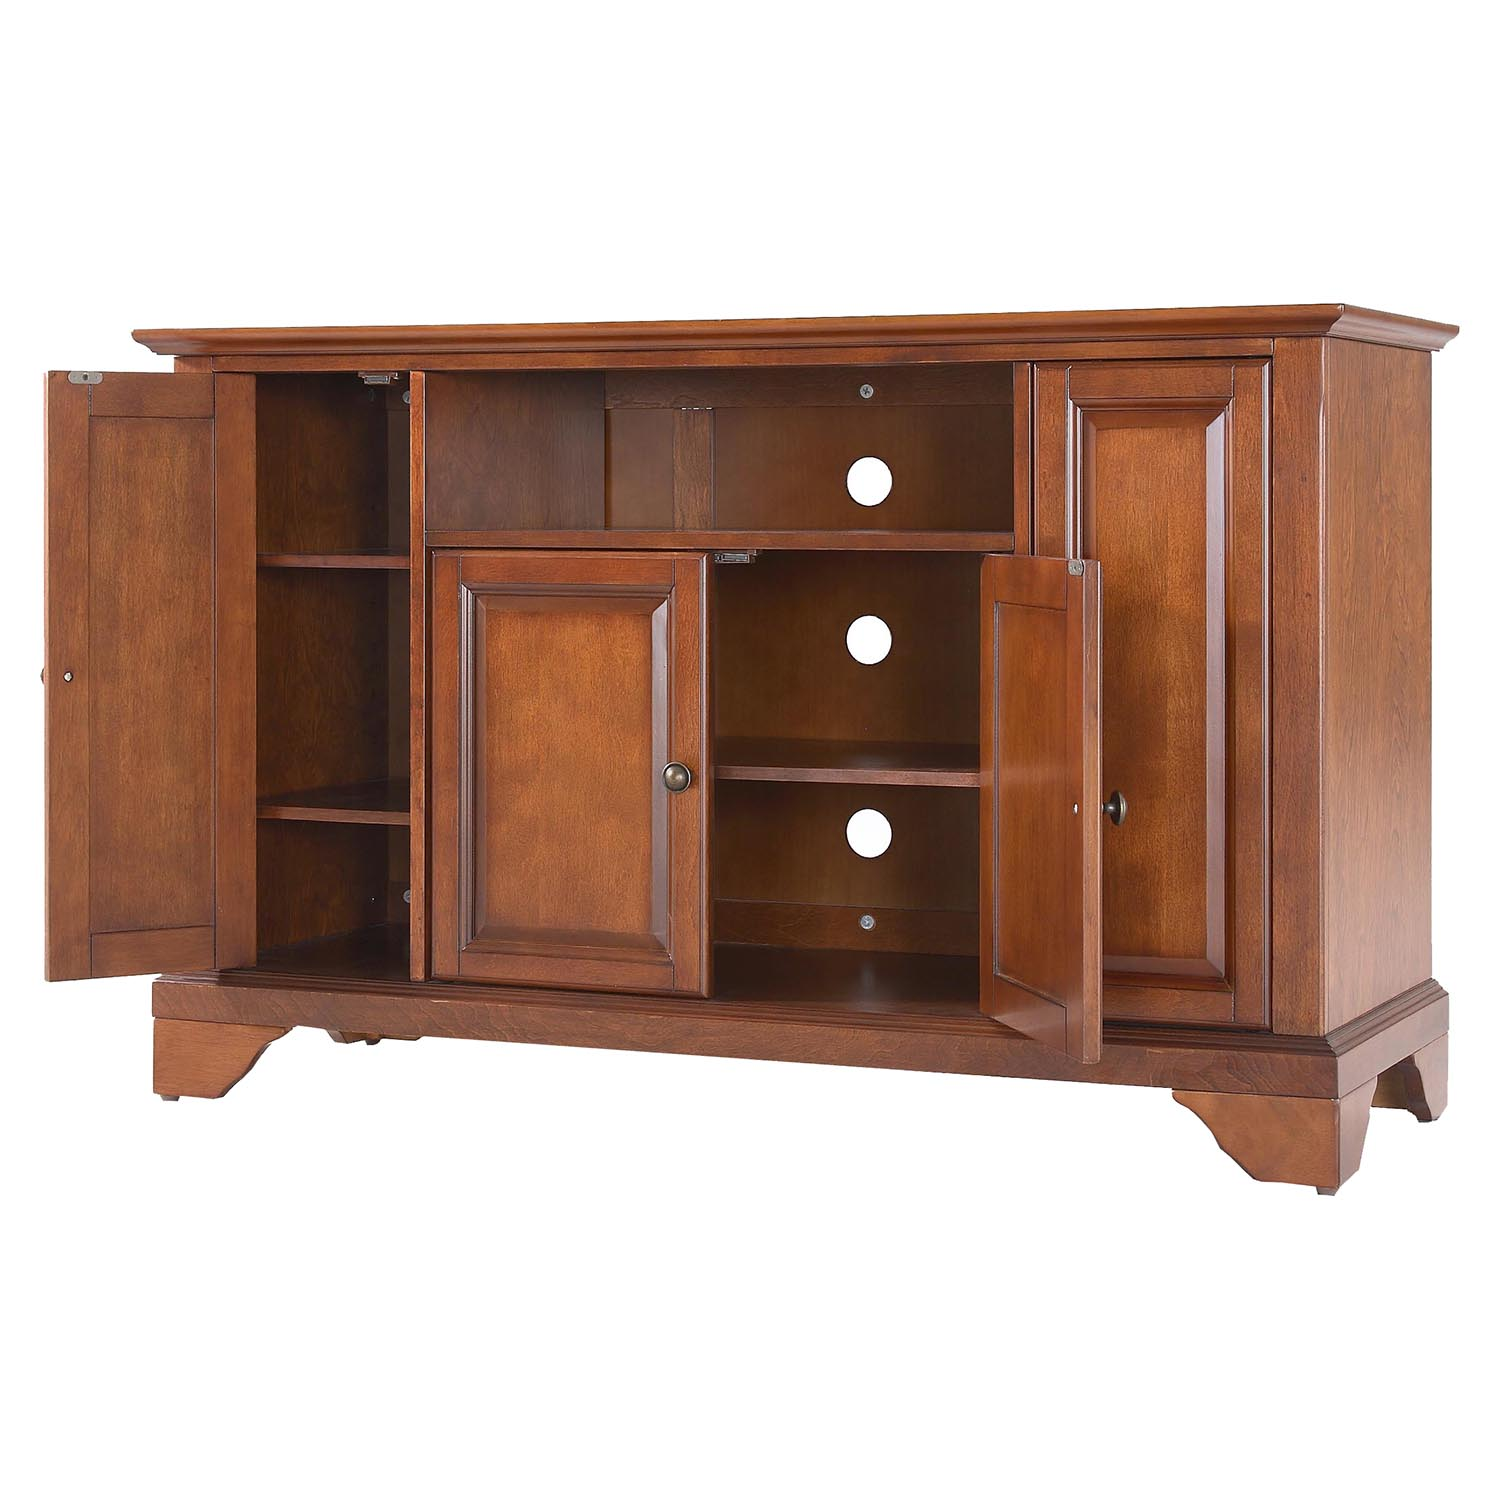 "LaFayette 48"" TV Stand - Classic Cherry - CROS-KF10002BCH"